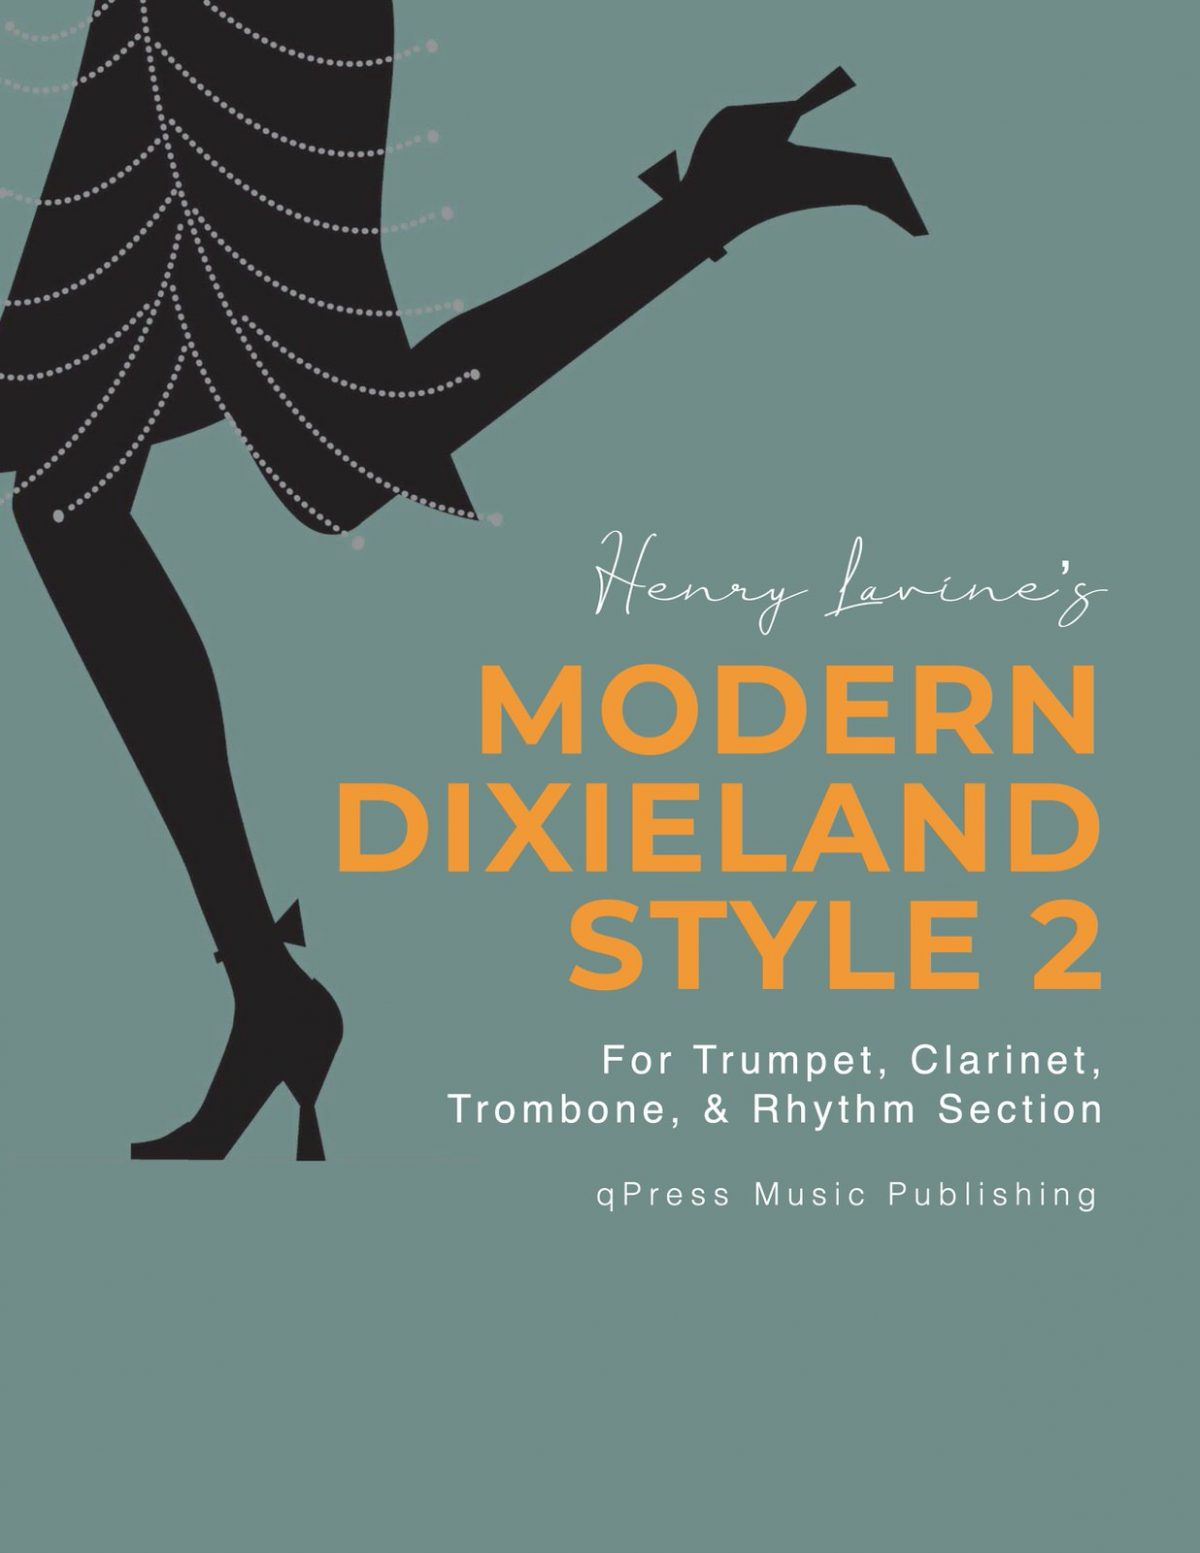 Levine, Modern Dixieland Style Book 2-p01